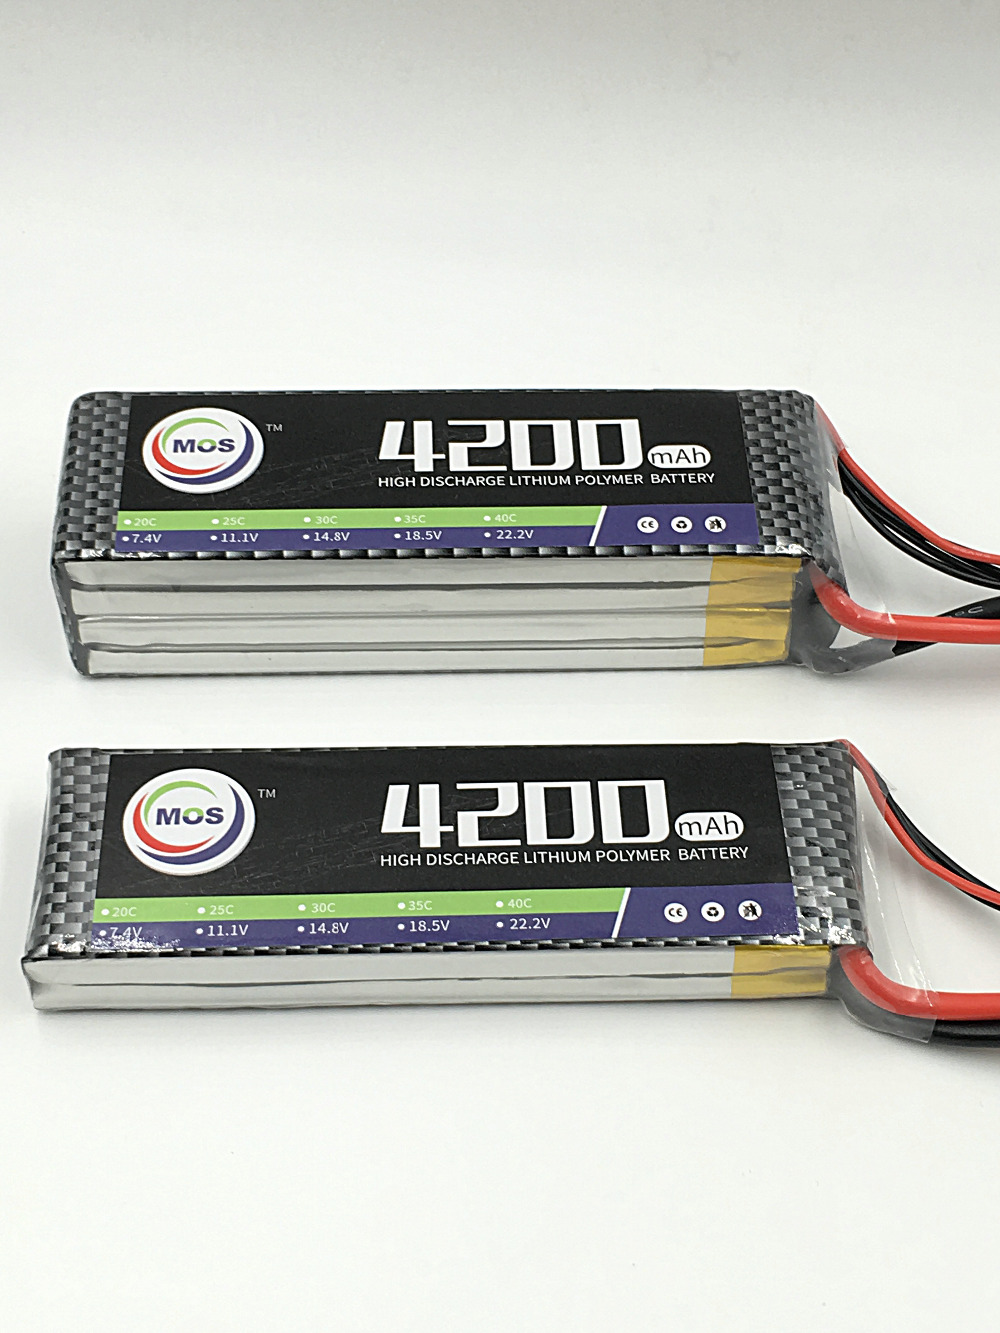 MOS RC Lipo battery 3S 11.1v 4200mah 35c for rc airplane rc helicopter quadcopter free shipping 1s 2s 3s 4s 5s 6s 7s 8s lipo battery balance connector for rc model battery esc